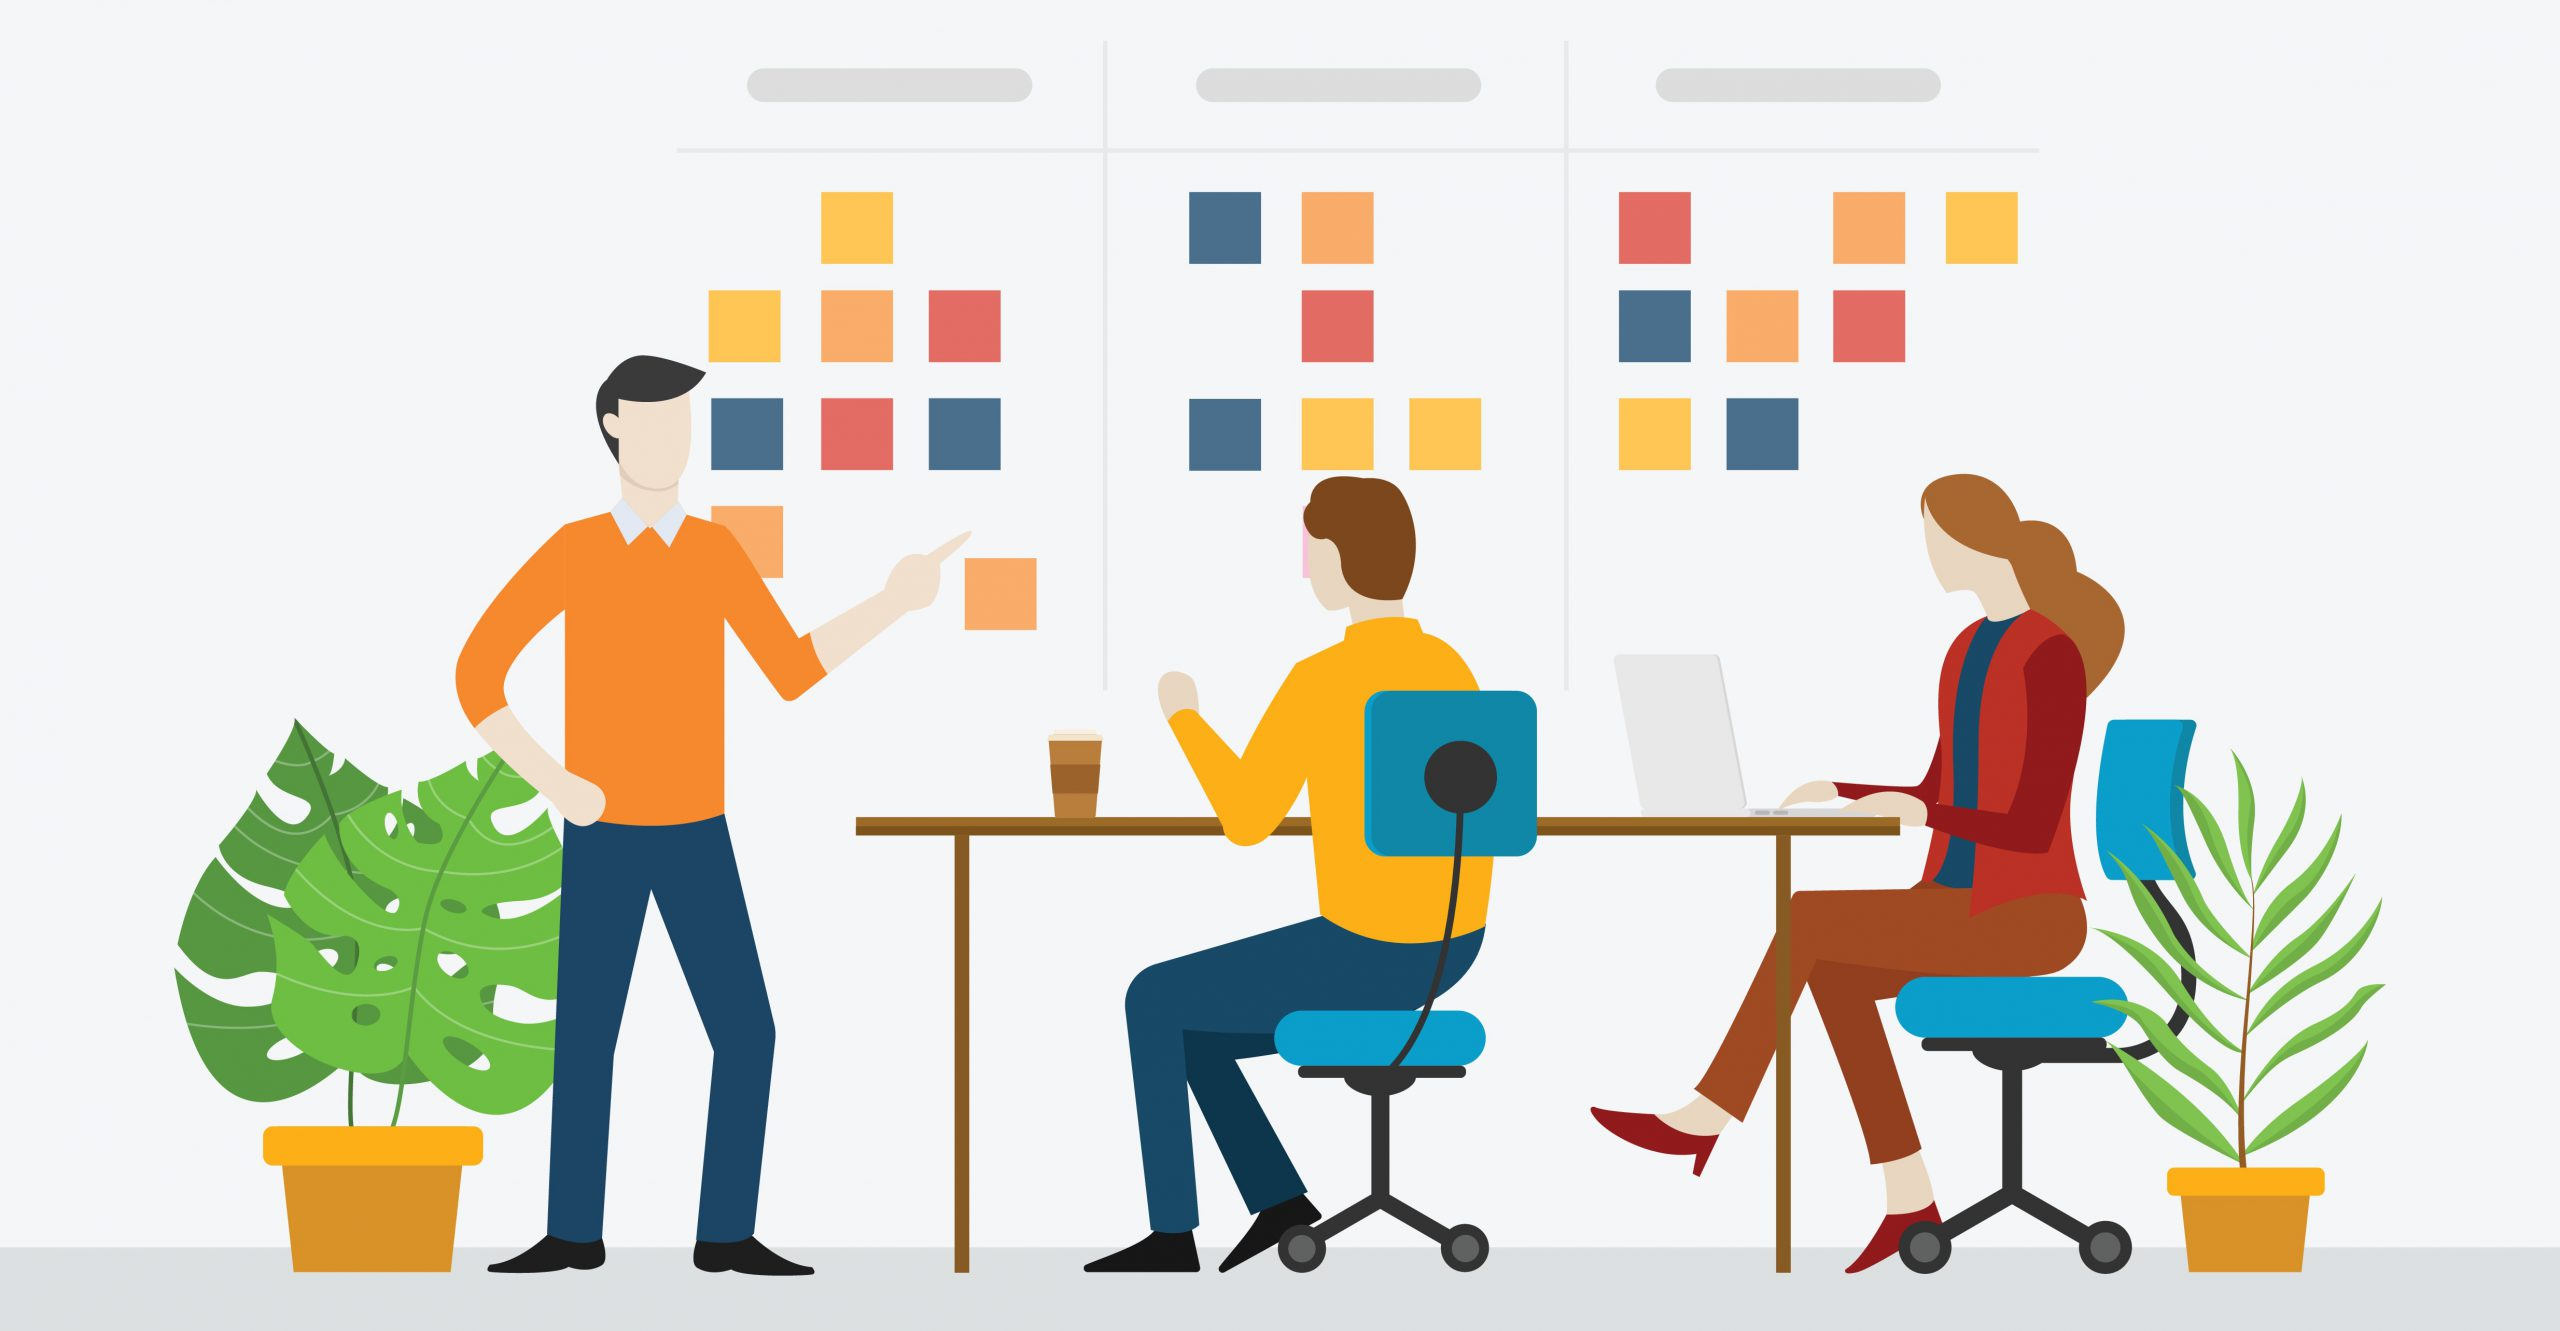 How to improve work in agile teams